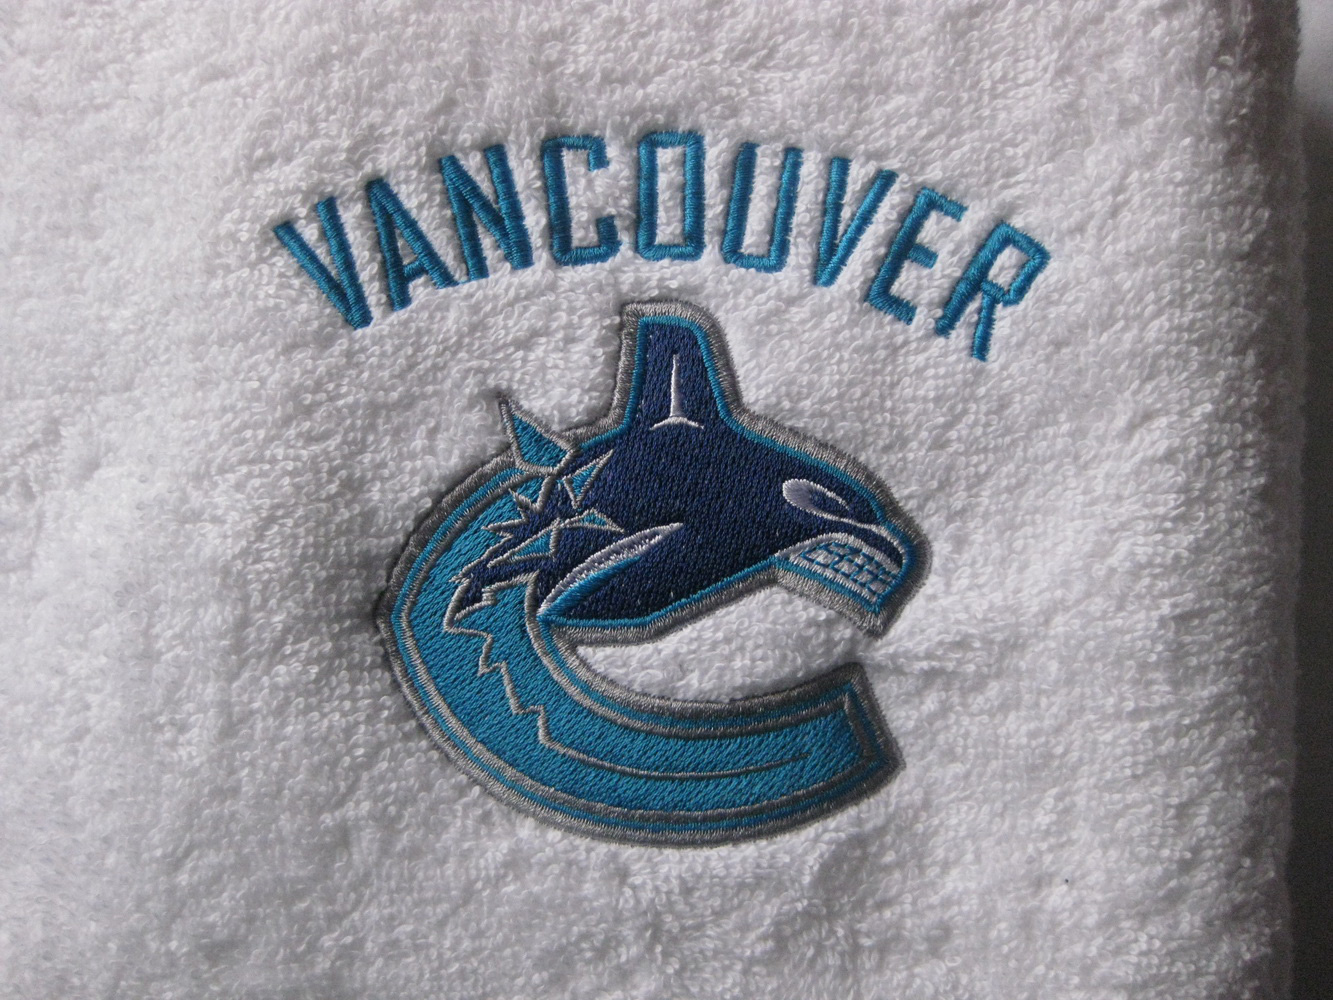 Vancouver Canucks logo on towel